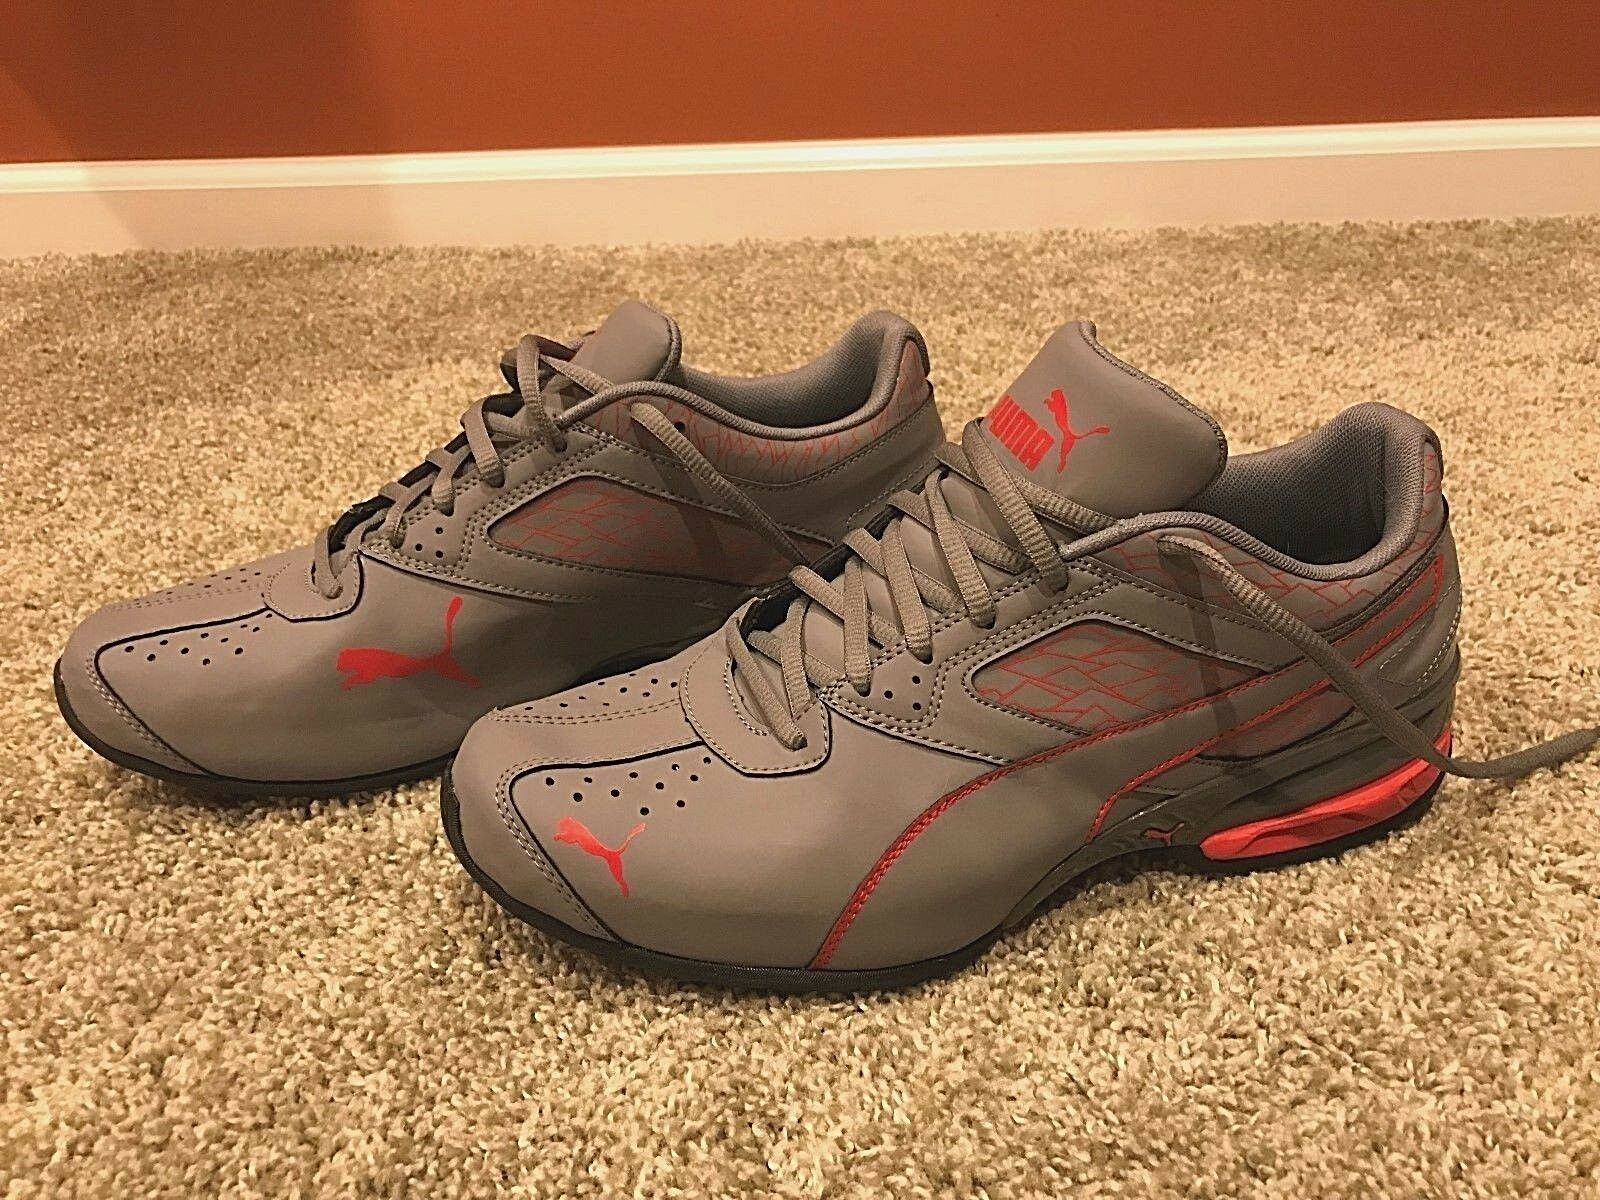 Puma Tazon 6 Fracture Running Athletic shoes Grey Red Size 10